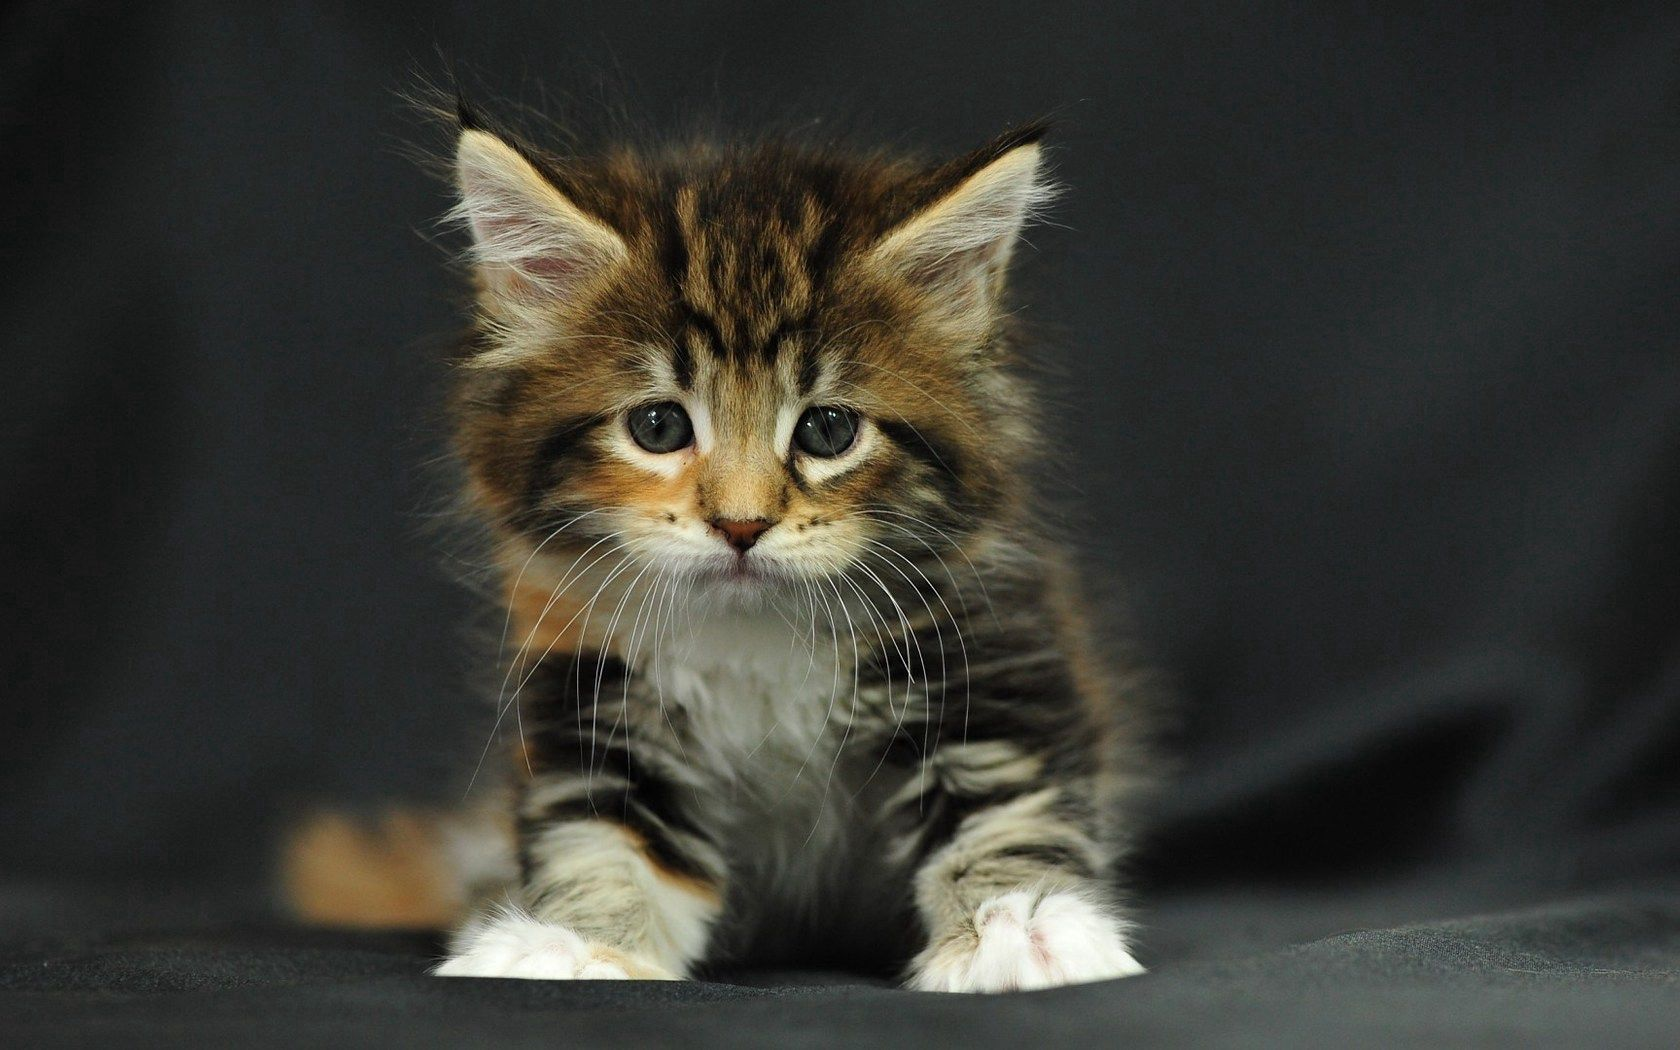 61266 download wallpaper Animals, Kitty, Kitten, Spotted, Spotty, Fluffy, Kid, Tot screensavers and pictures for free